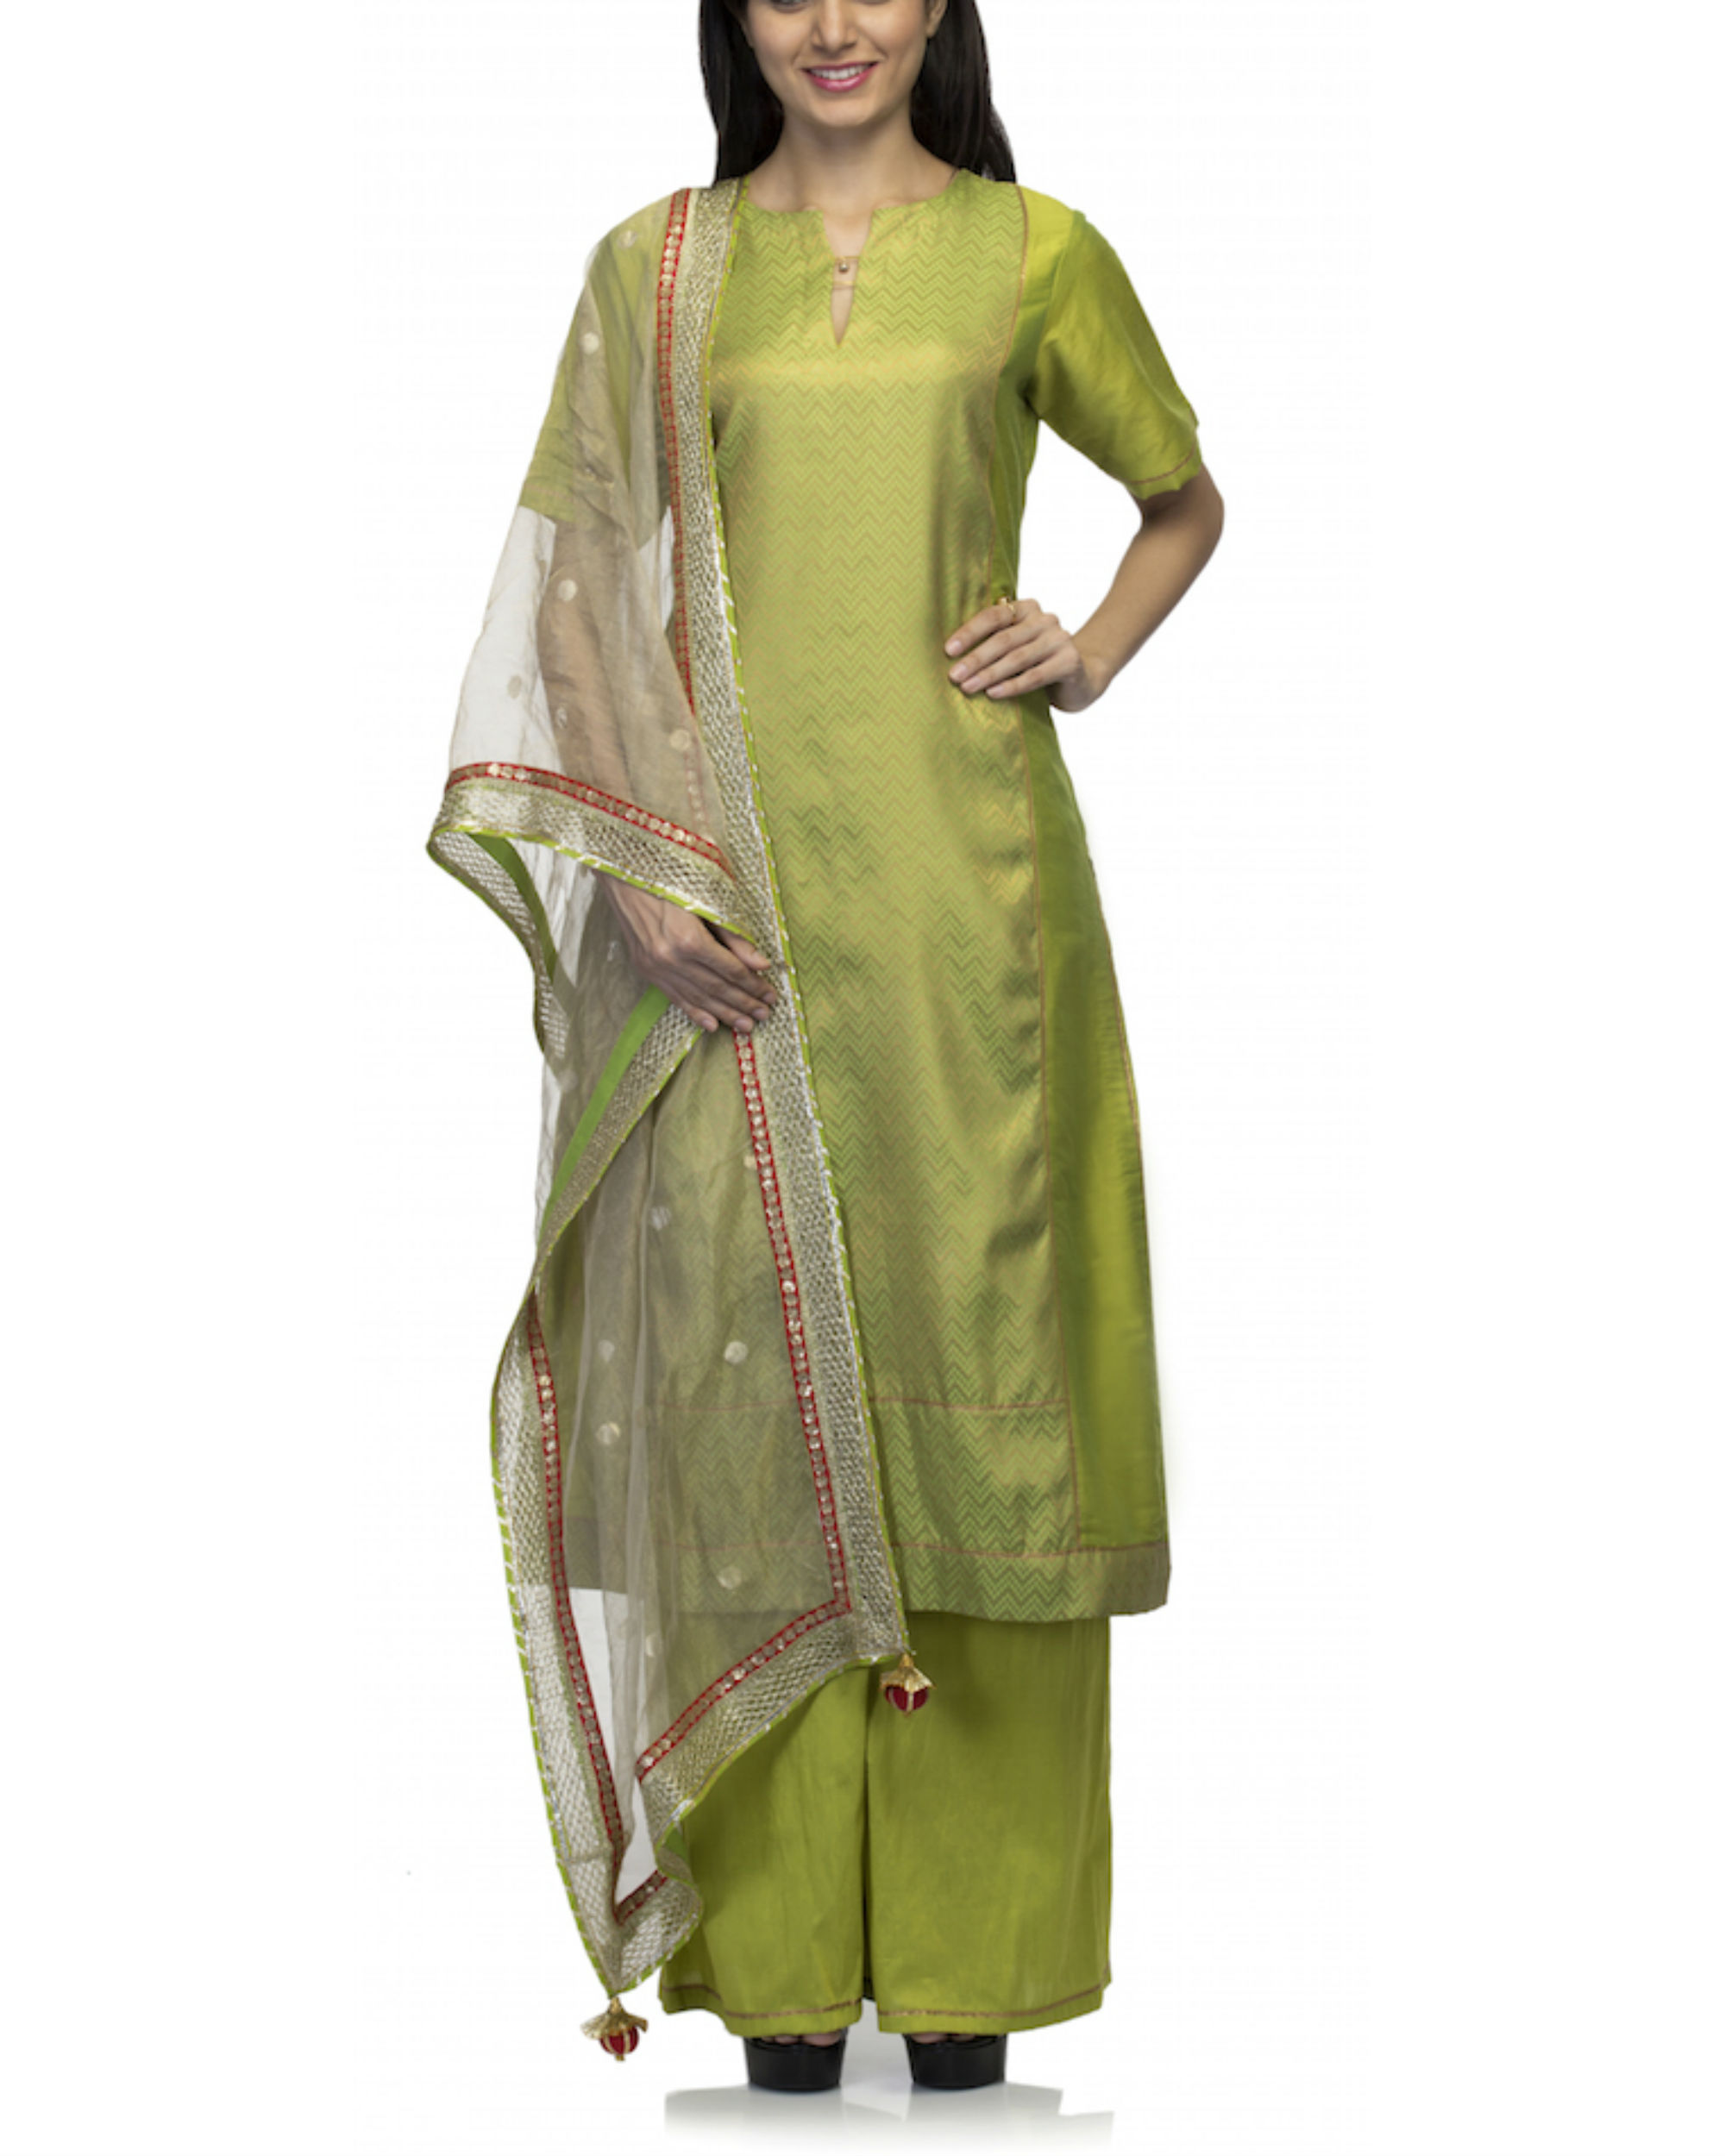 Lime green kurta set with dupatta